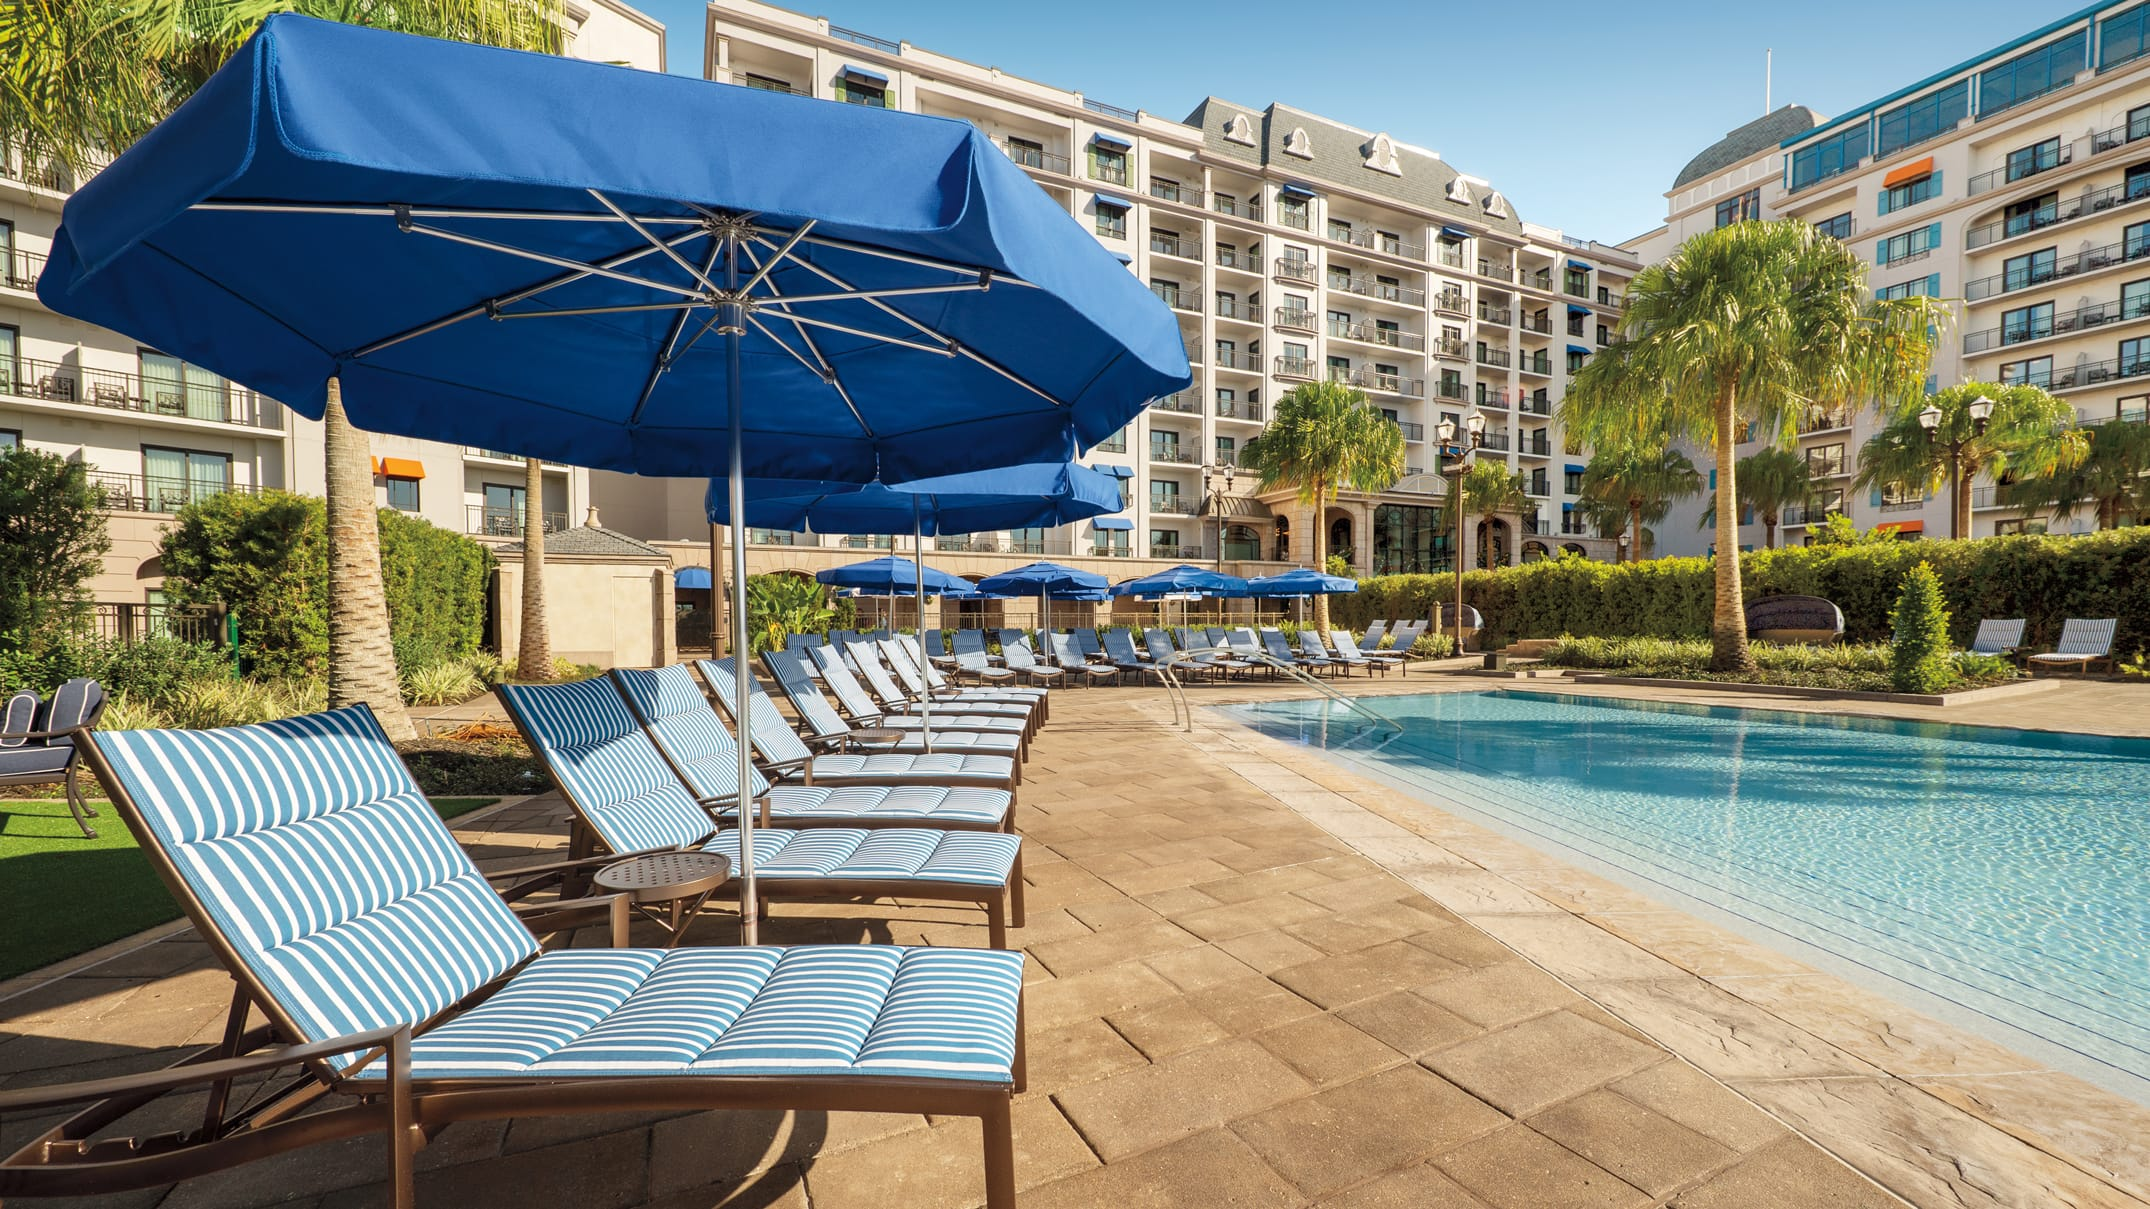 Several chaise lounge chairs and sun umbrellas surrounding Beau Soleil Pool at Disney's Riviera Resort